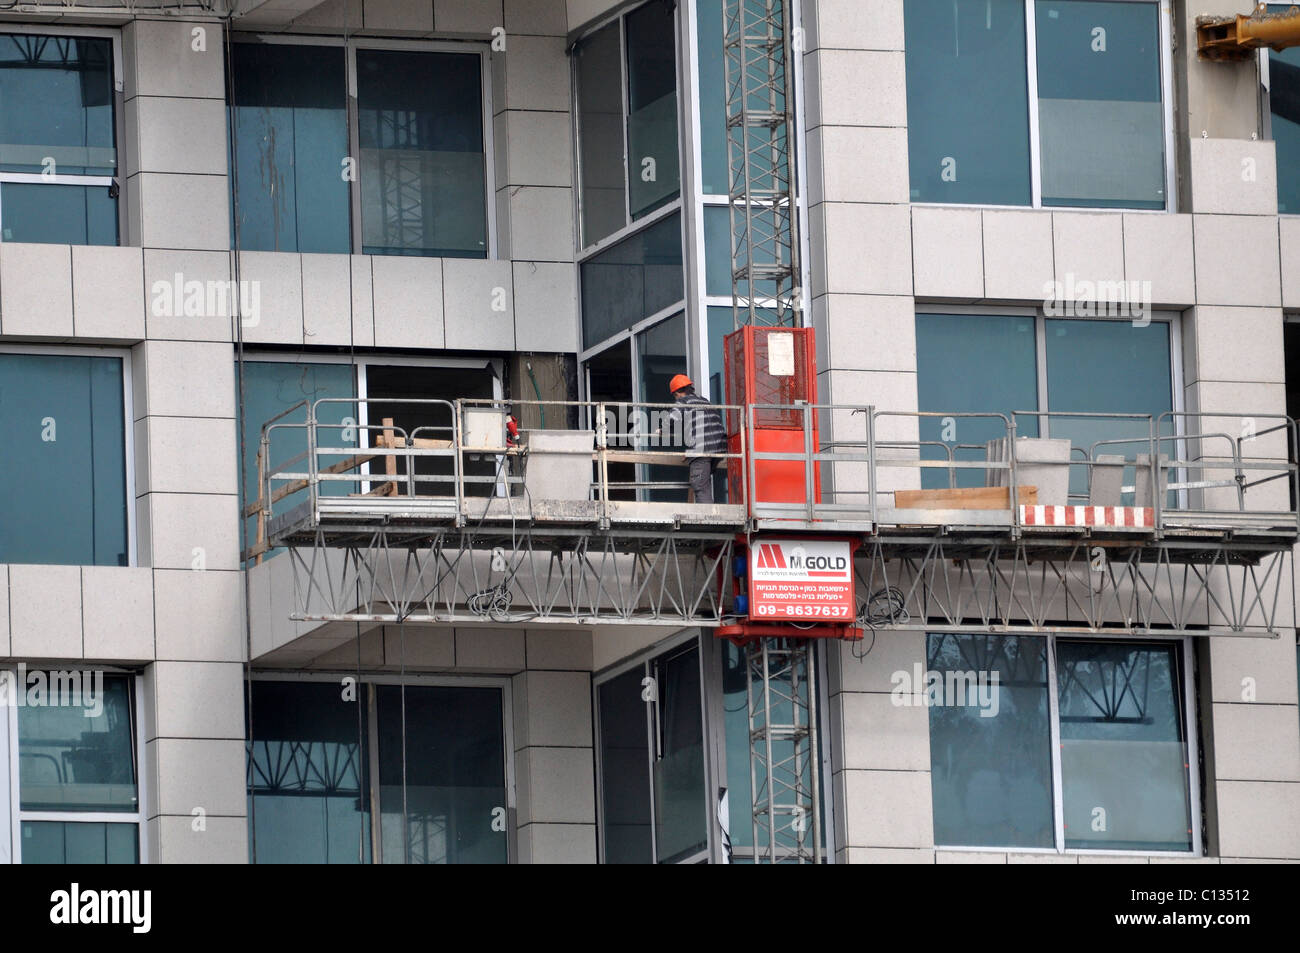 Israel, Tel Aviv Scaffold lift on the side of a highrise building - Stock Image